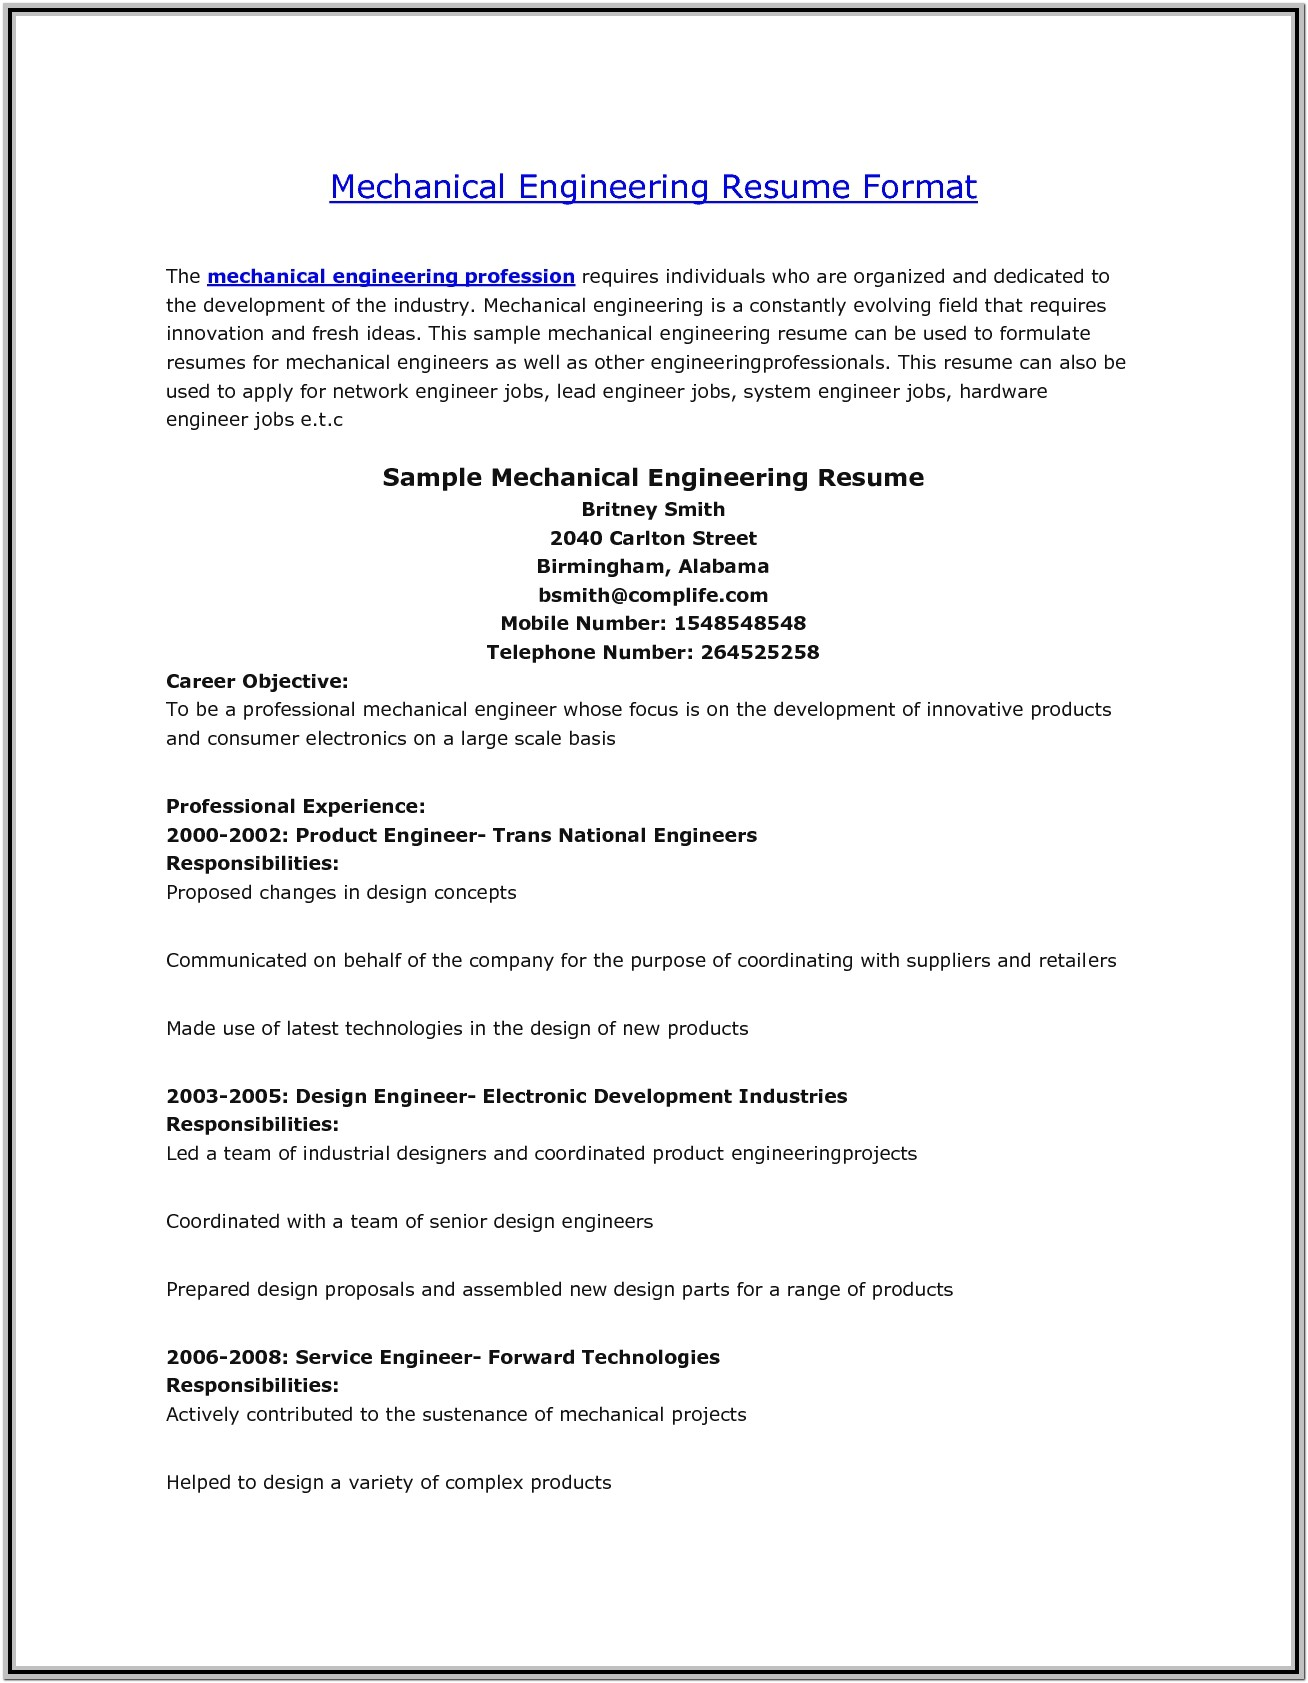 Diploma Resume Format Free Download